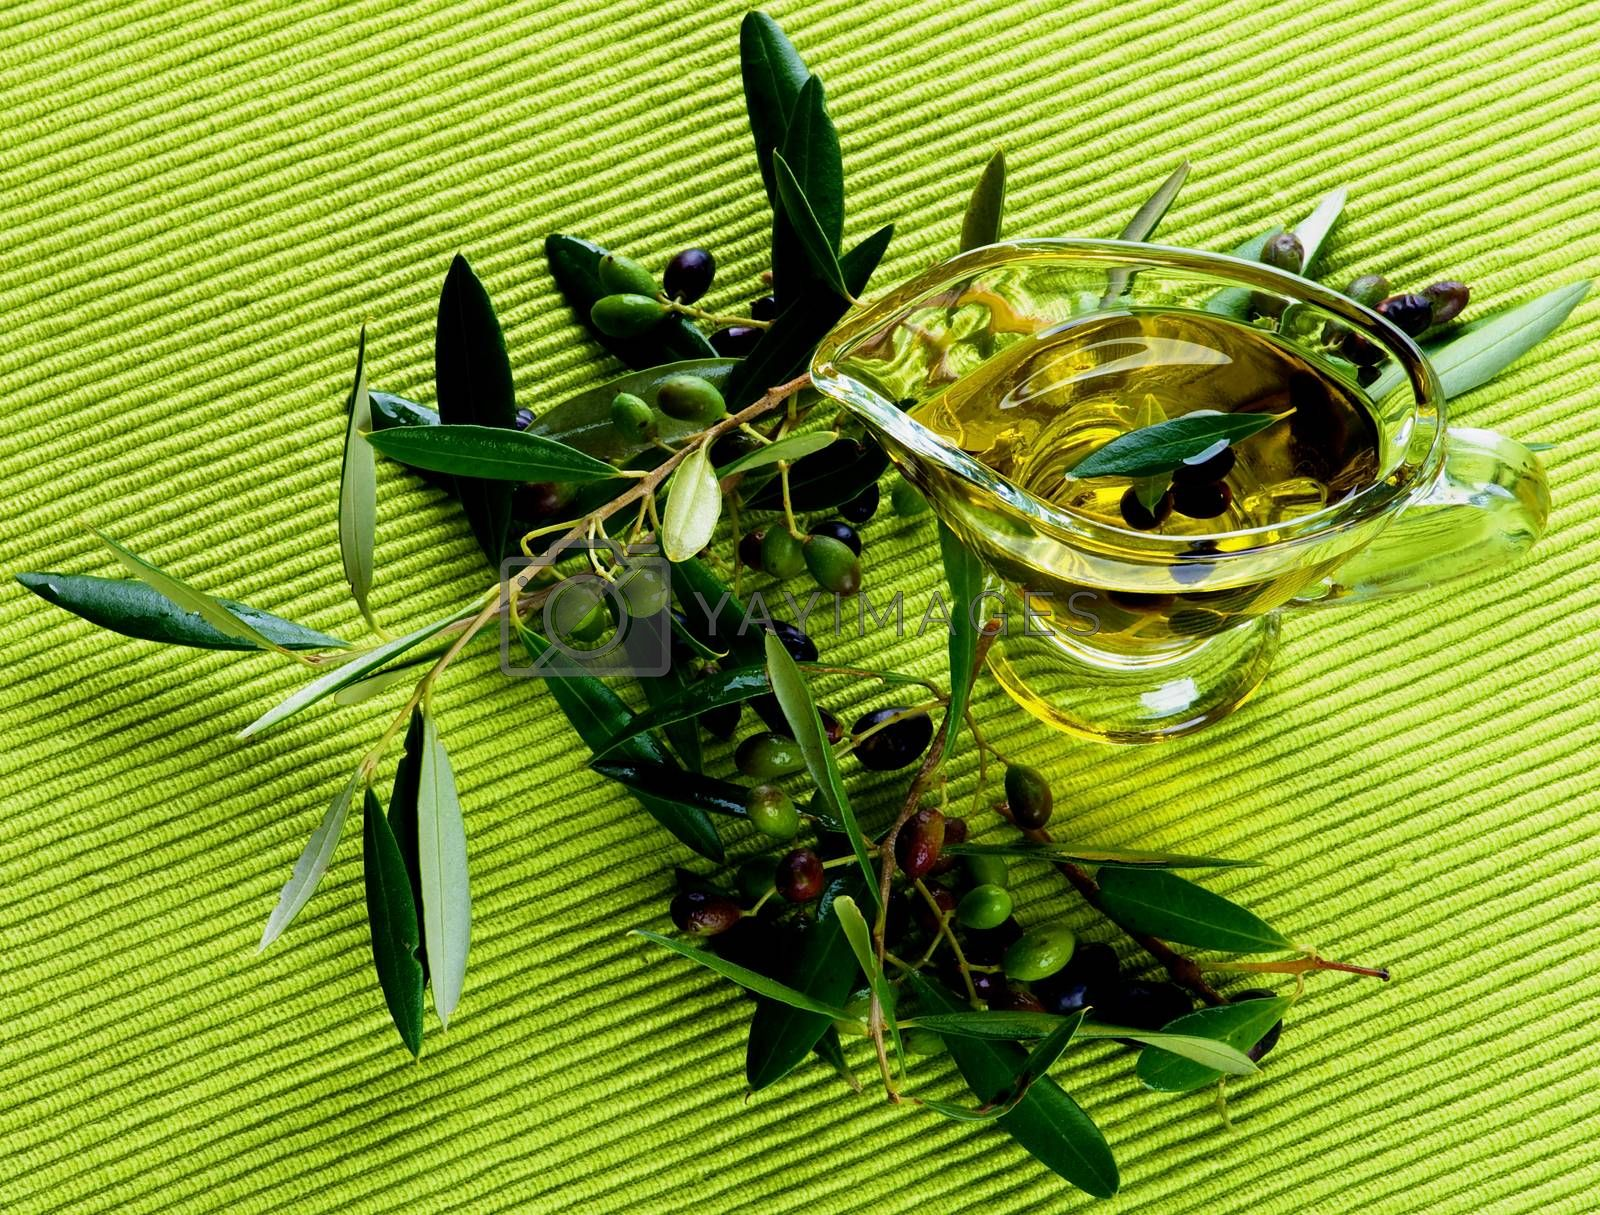 Fresh Olive Oil in Glass Gravy with Raw Green and Black Olives with Leafs on Green Textile background. Top View